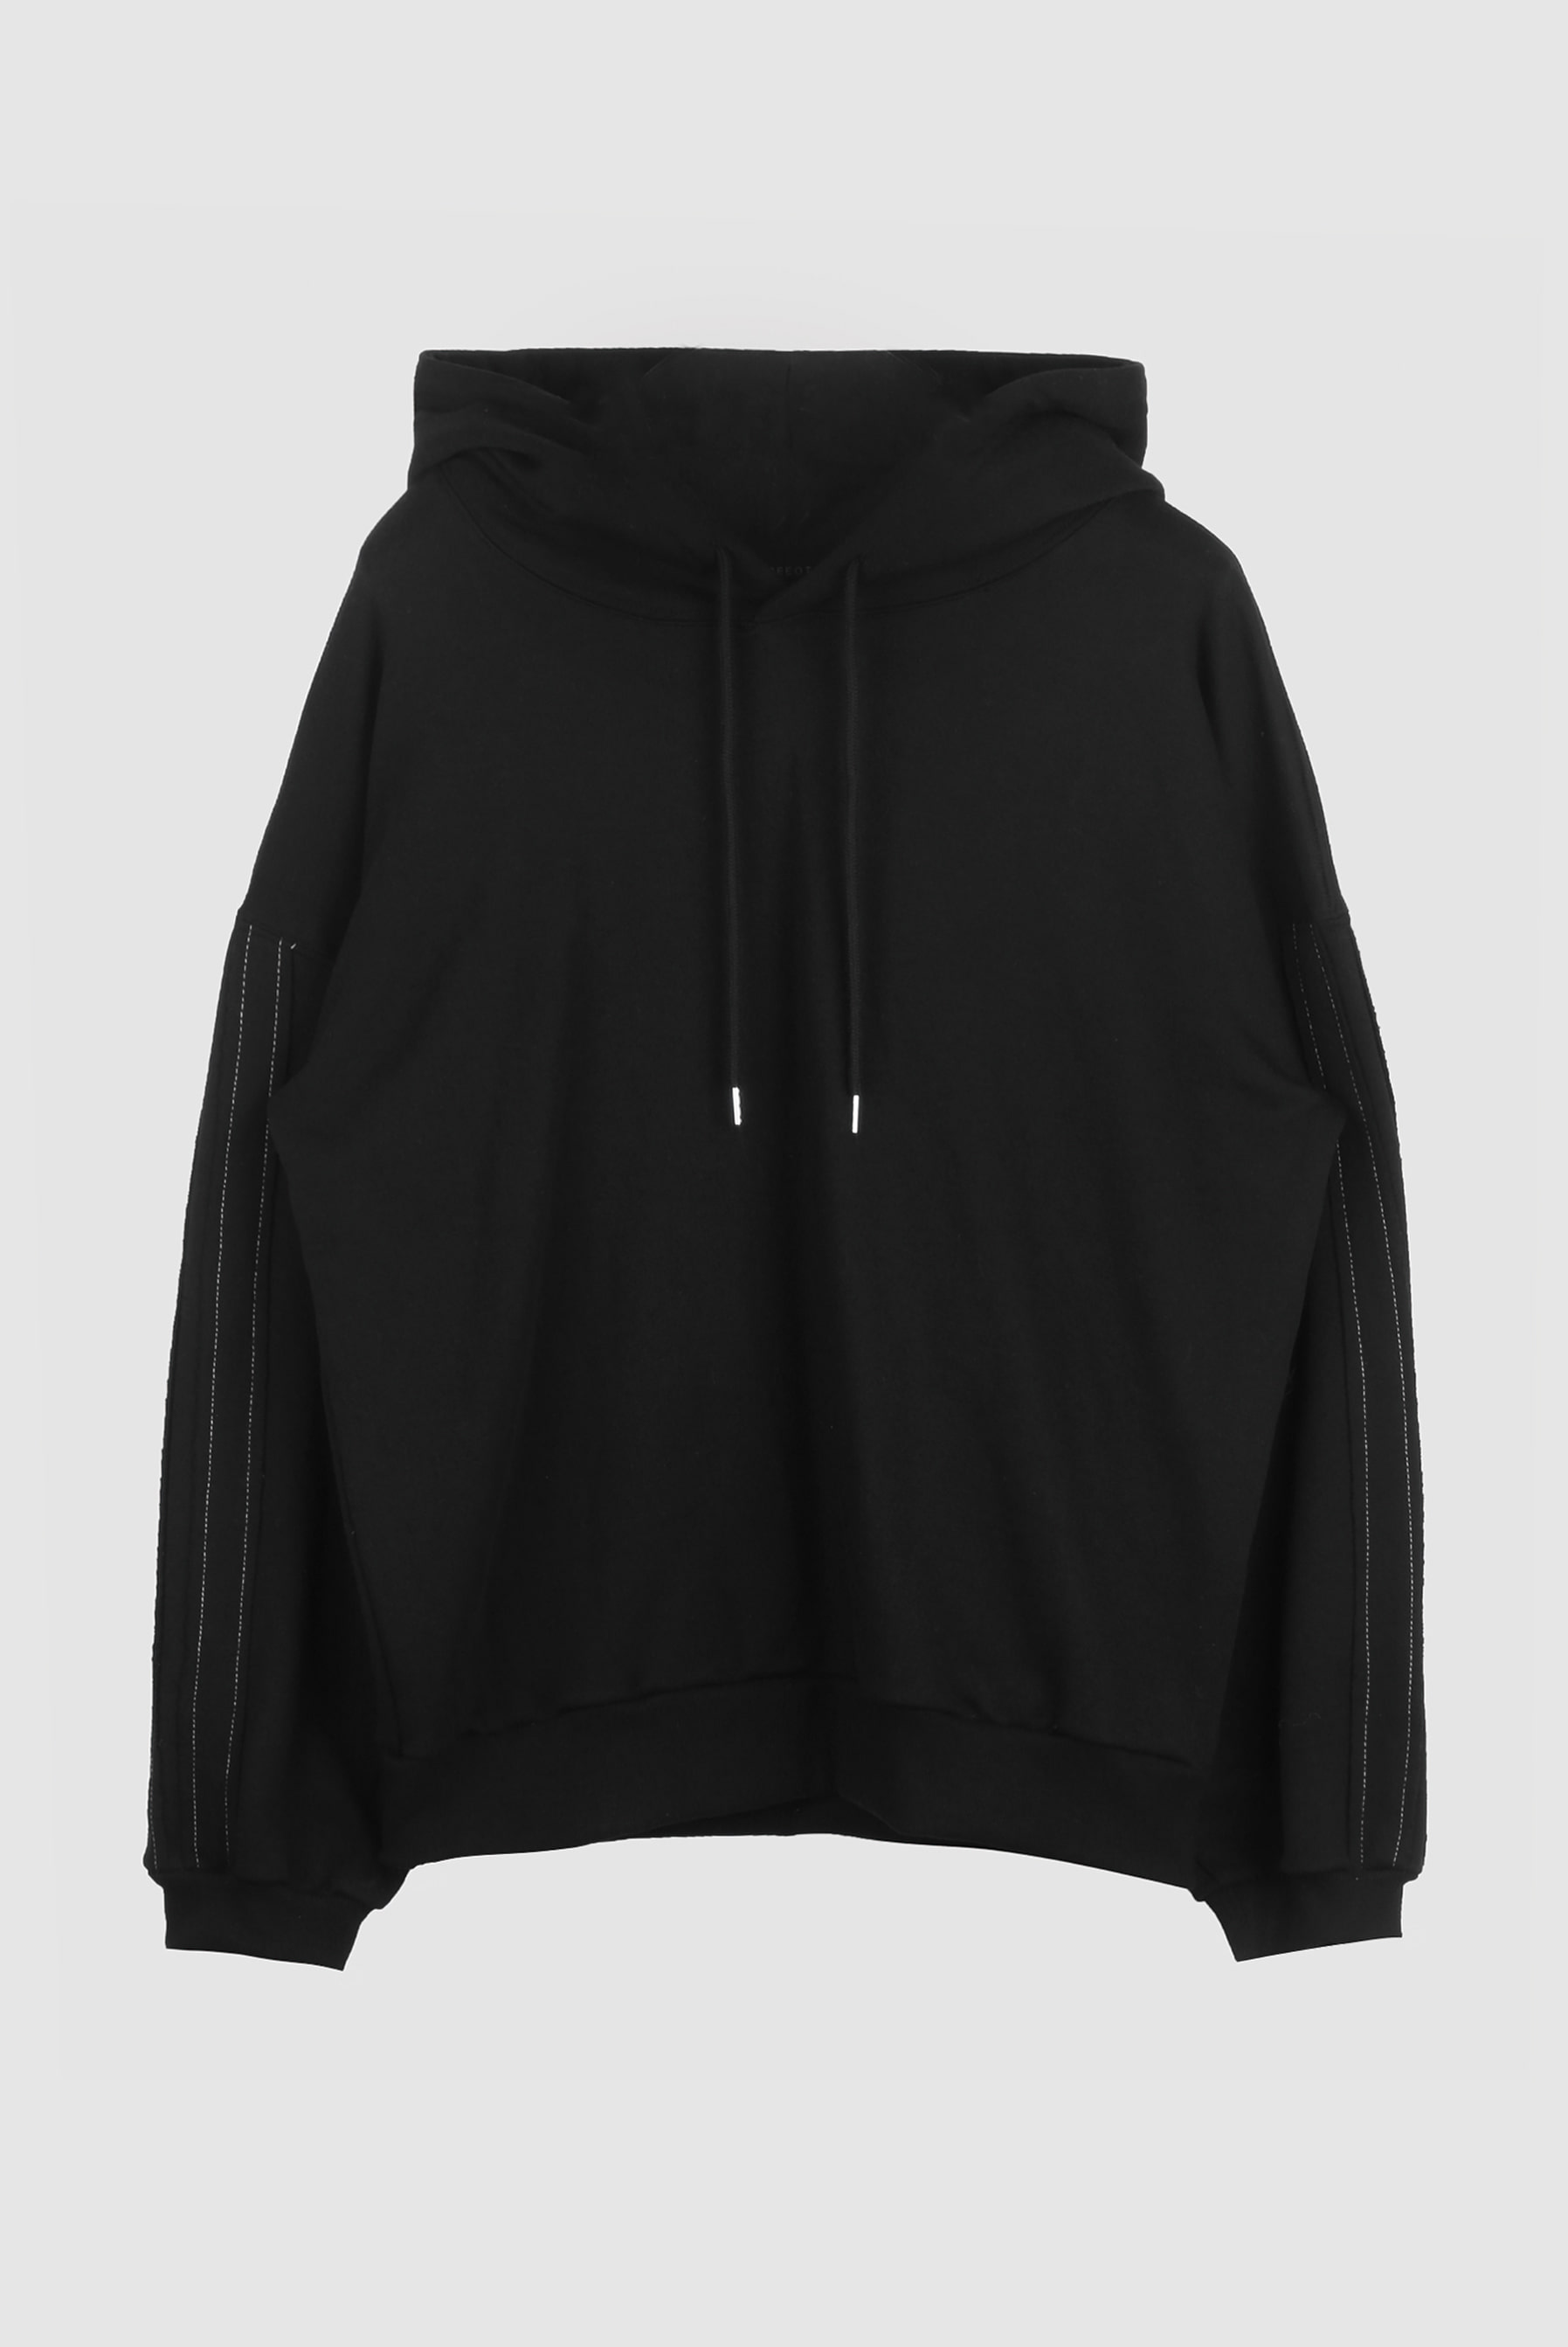 Doubble_Line Hoodie